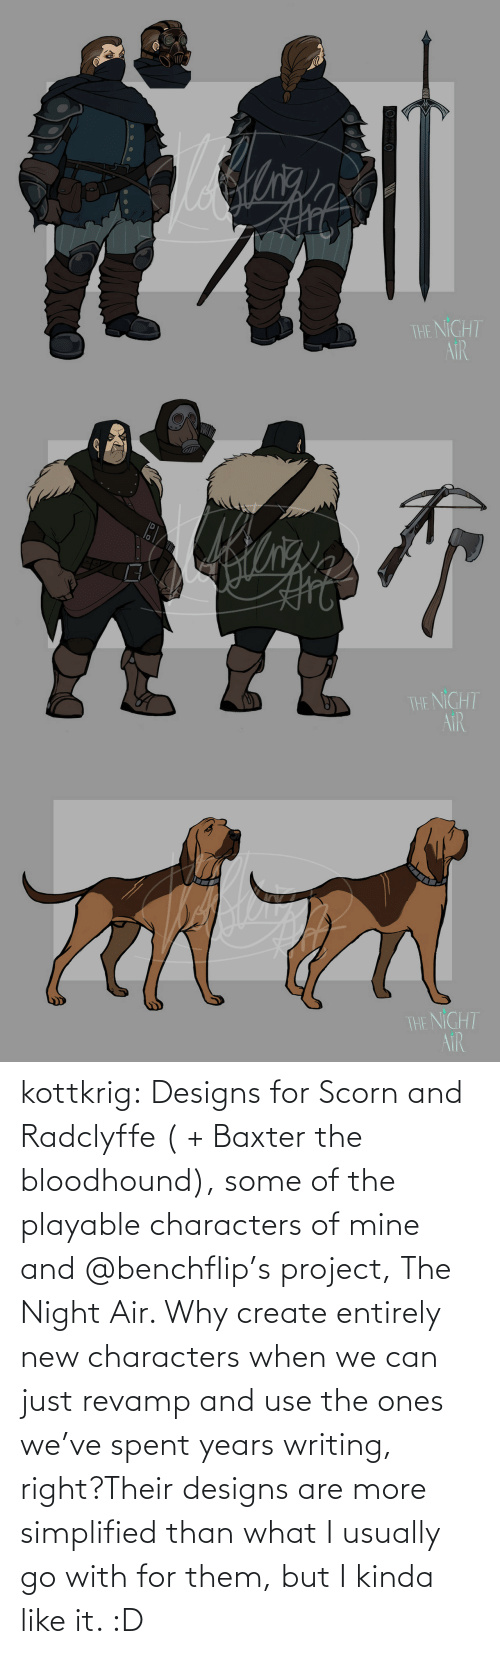 Kinda Like: kottkrig:  Designs for Scorn and Radclyffe ( + Baxter the bloodhound), some of the playable characters of mine and @benchflip's project, The Night Air. Why create entirely new characters when we can just revamp and use the ones we've spent years writing, right?Their designs are more simplified than what I usually go with for them, but I kinda like it. :D